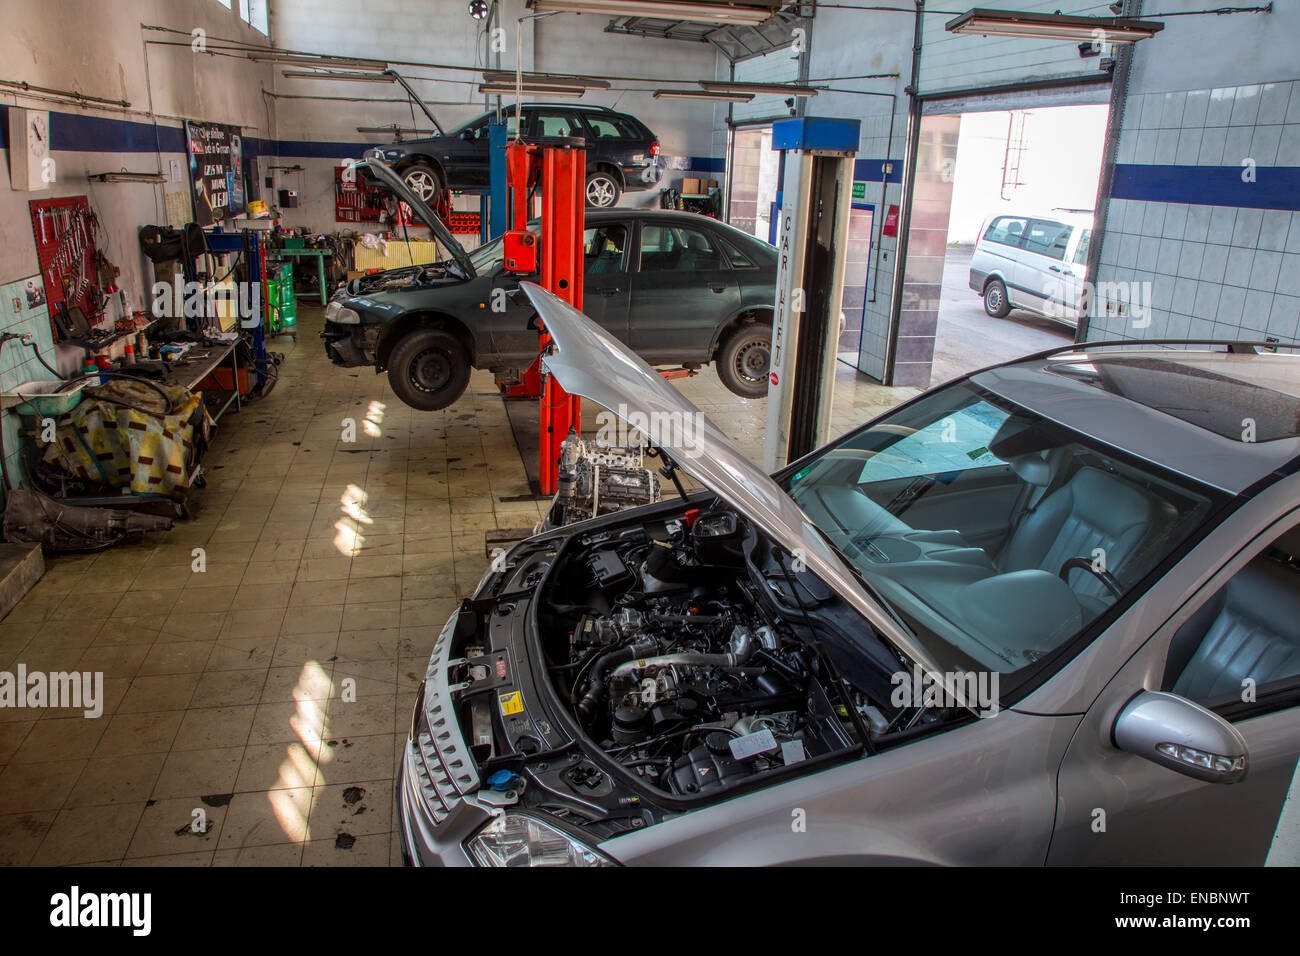 Old style car service with the cars inside Stock Photo: 82007908 - Alamy